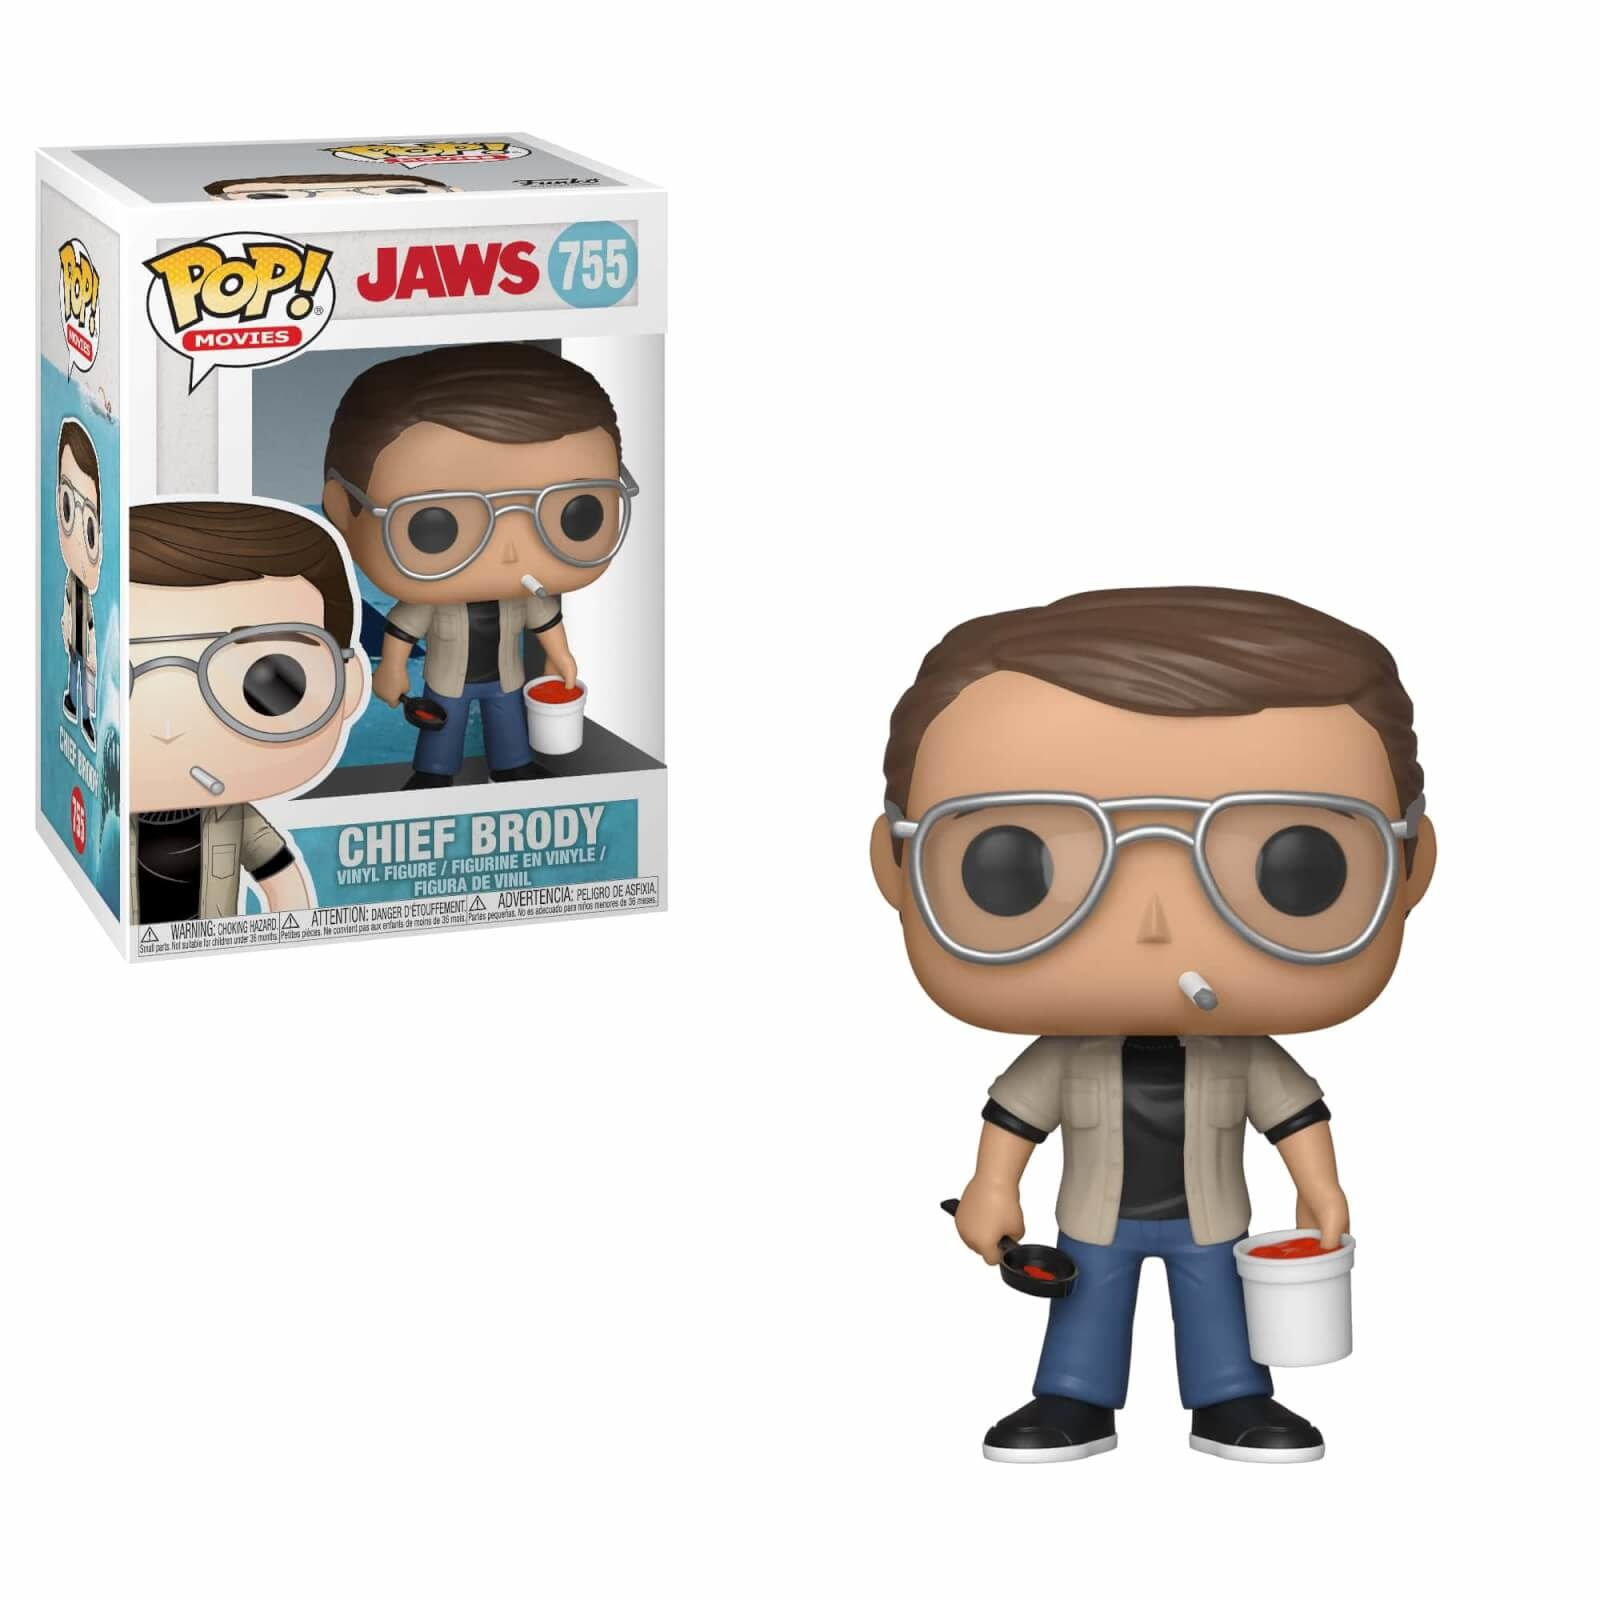 Pop! Jaws Chief Brody